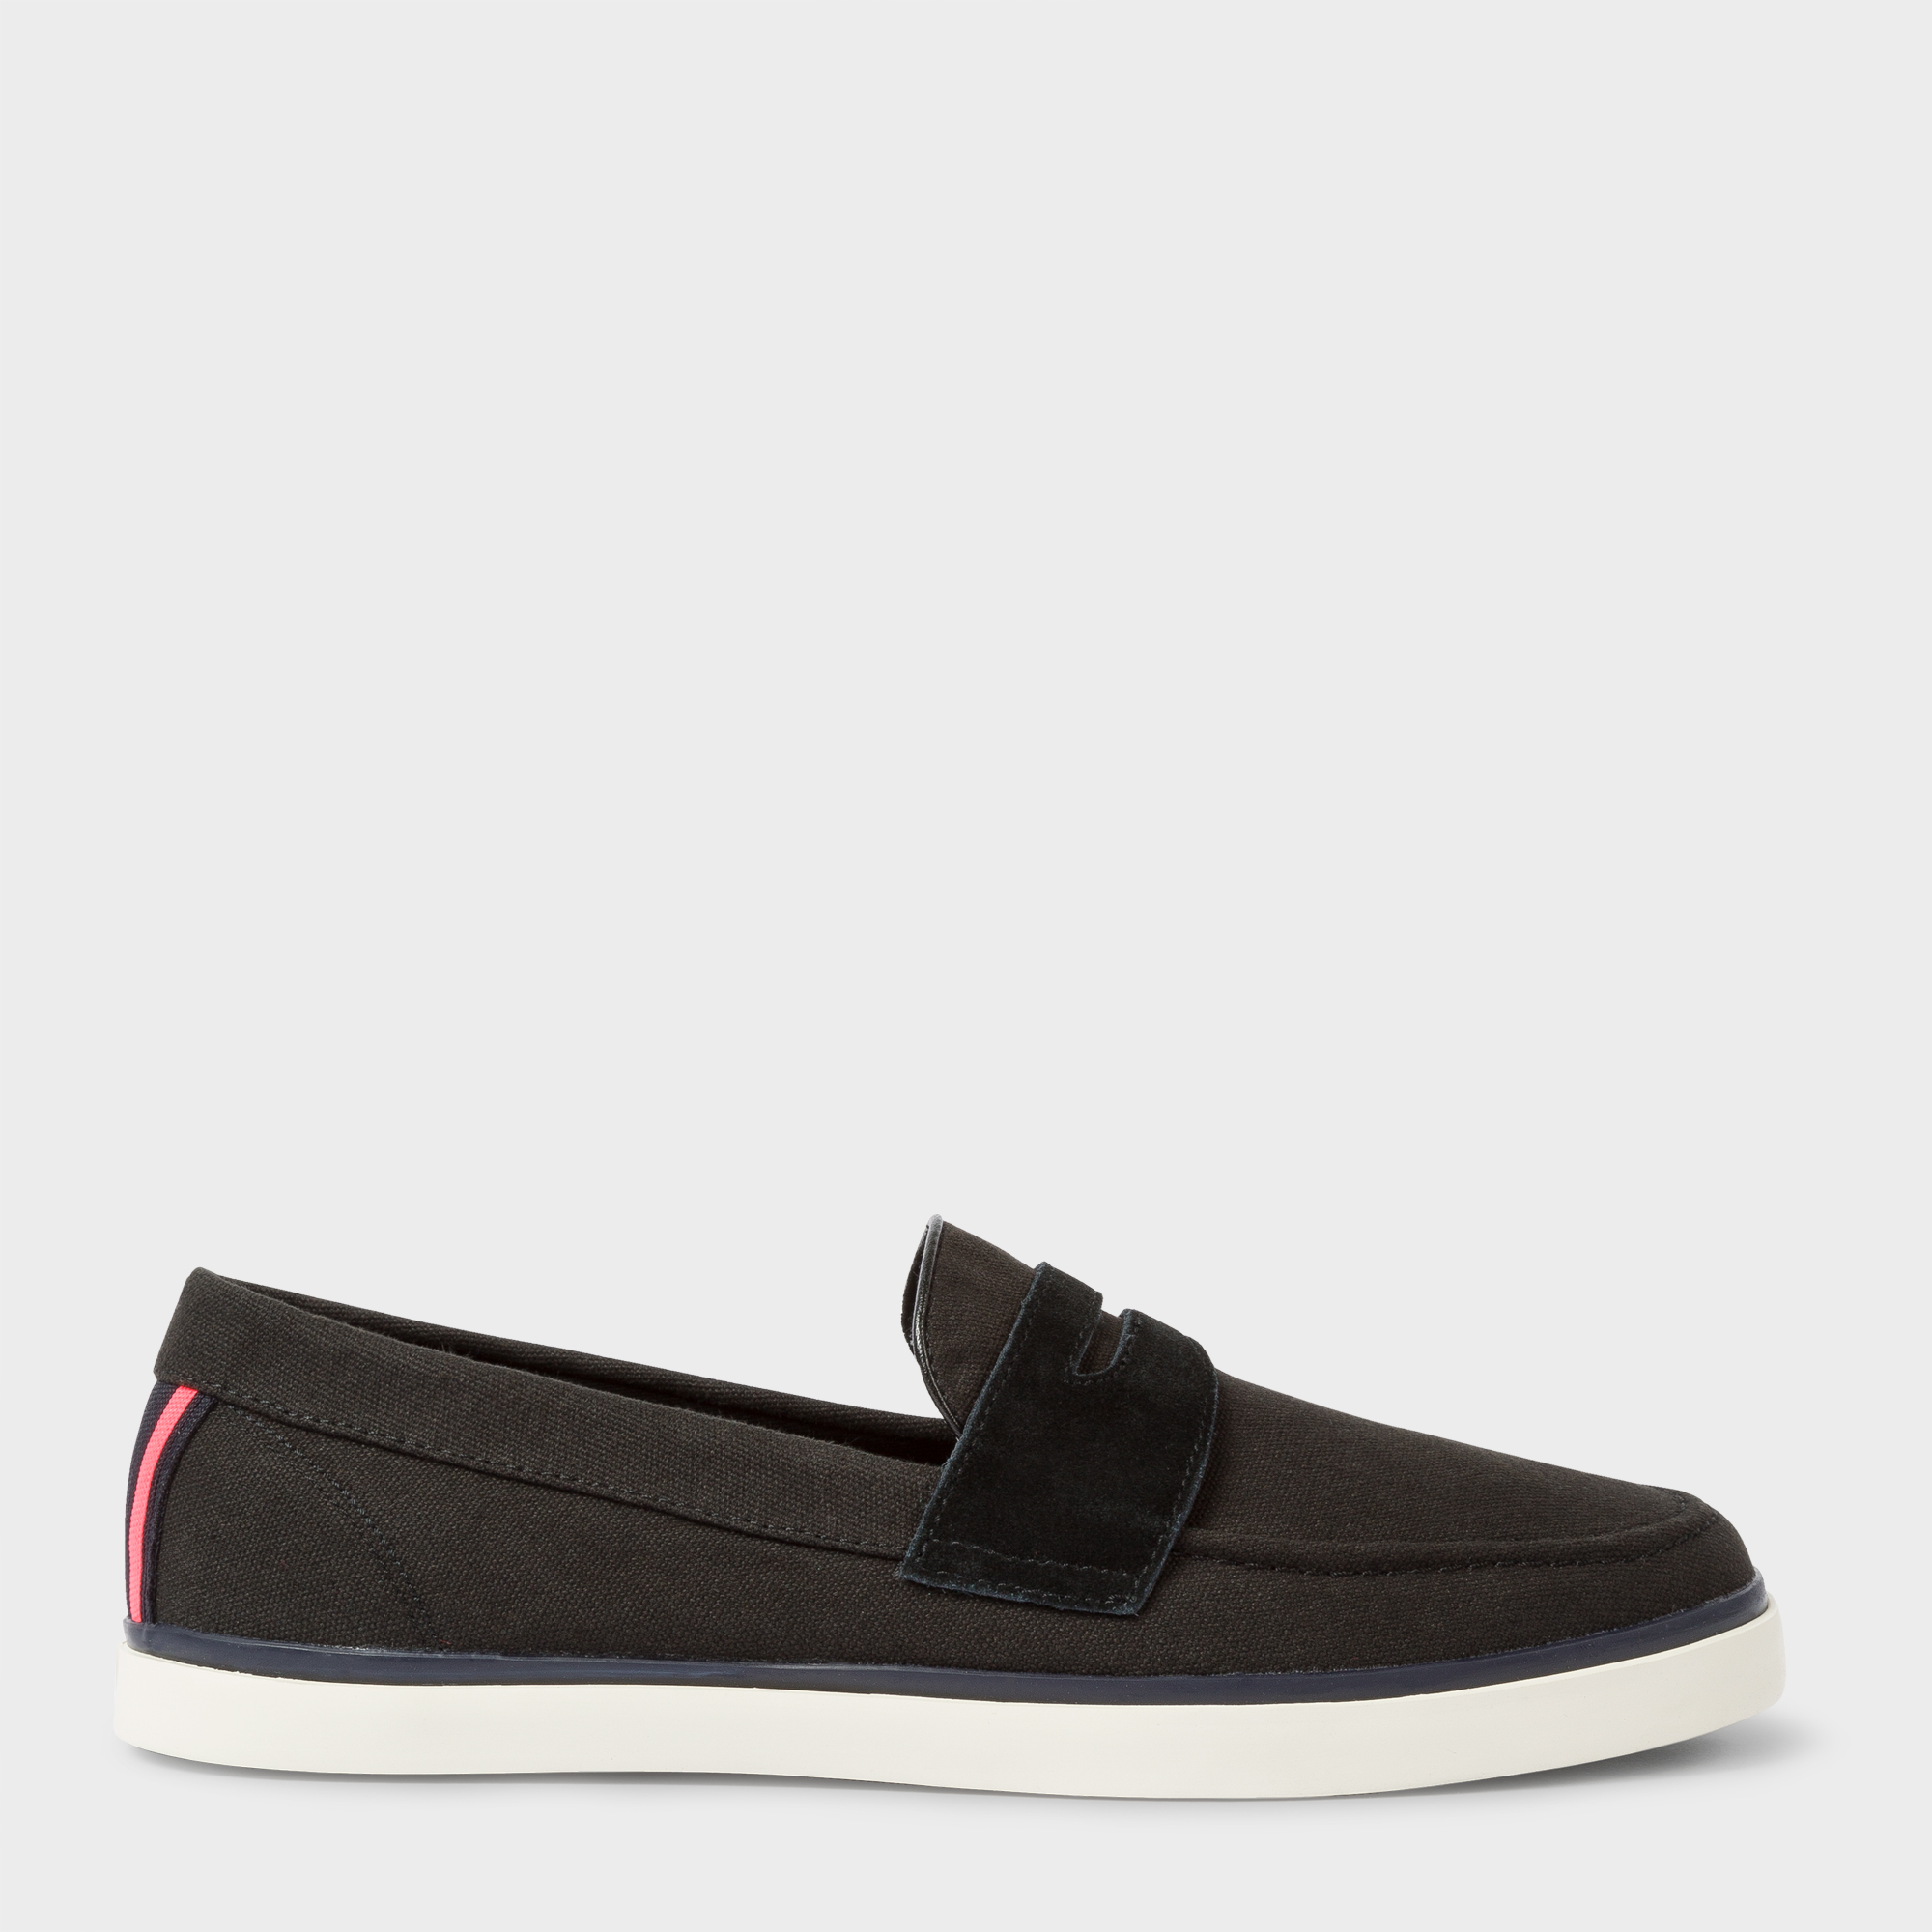 Paul Smith Men's Black Canvas 'Cheree' Slip-On Trainers